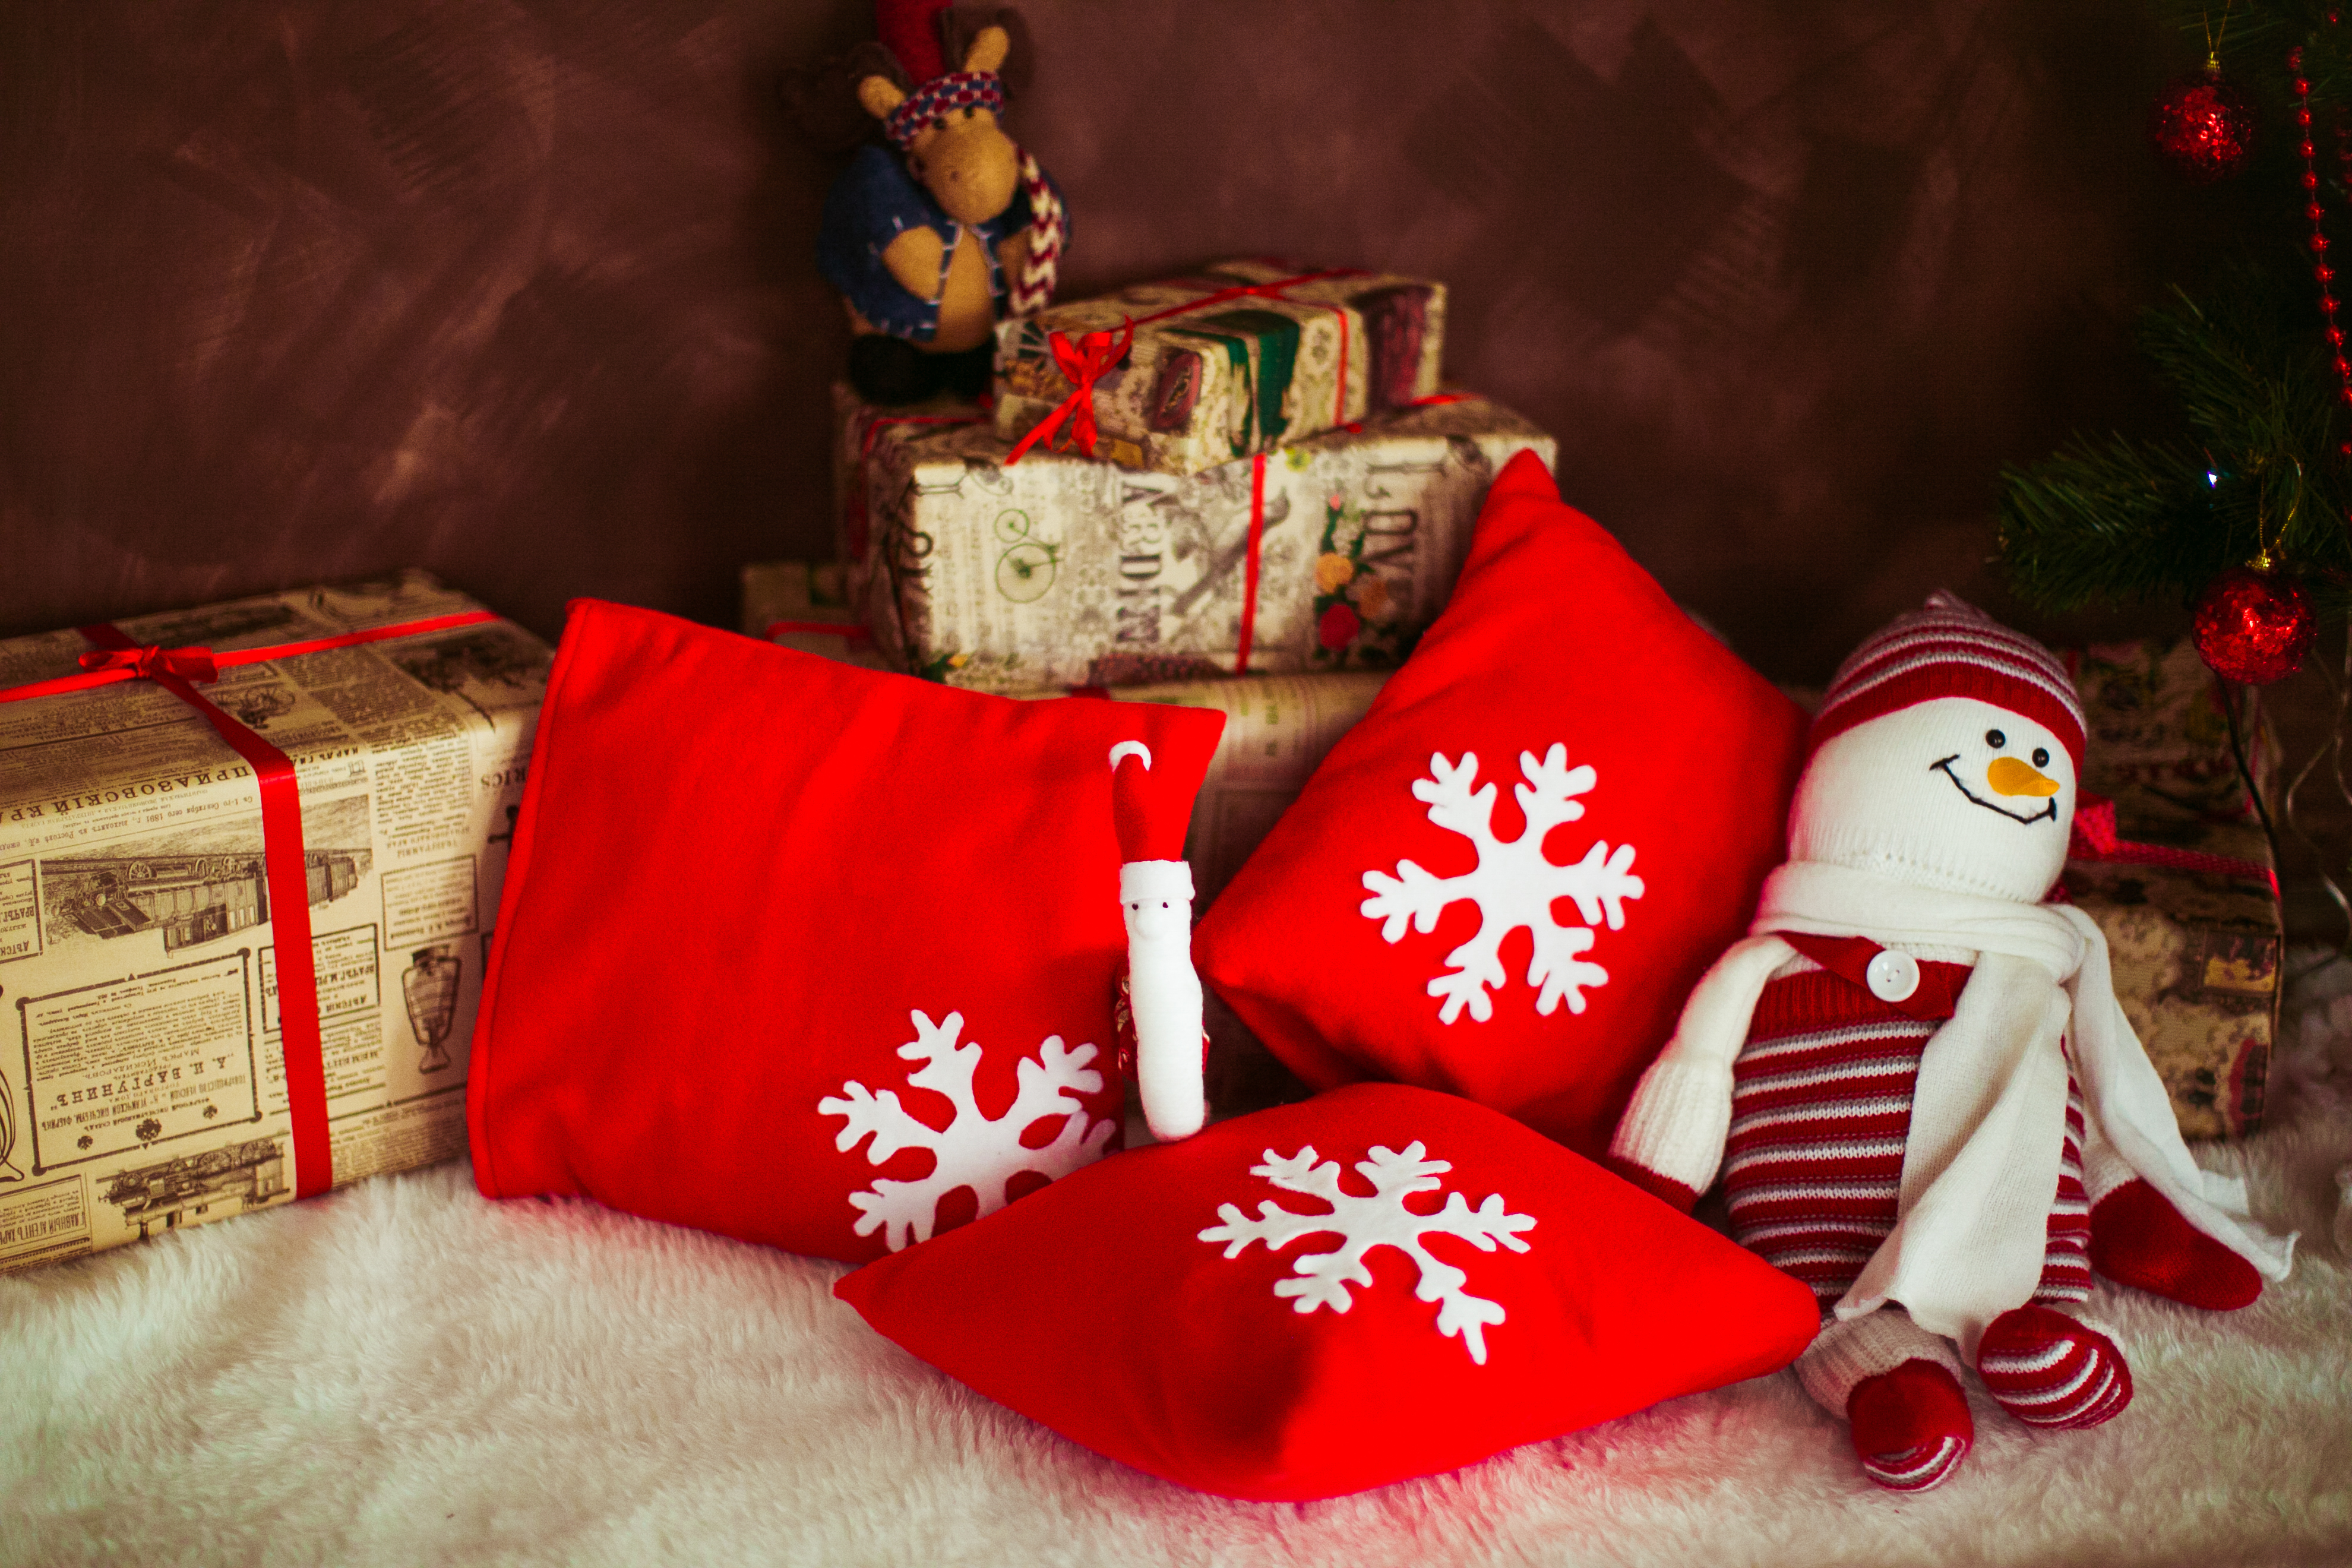 Red pillows with snowflakes and toy snowman lie on the floor